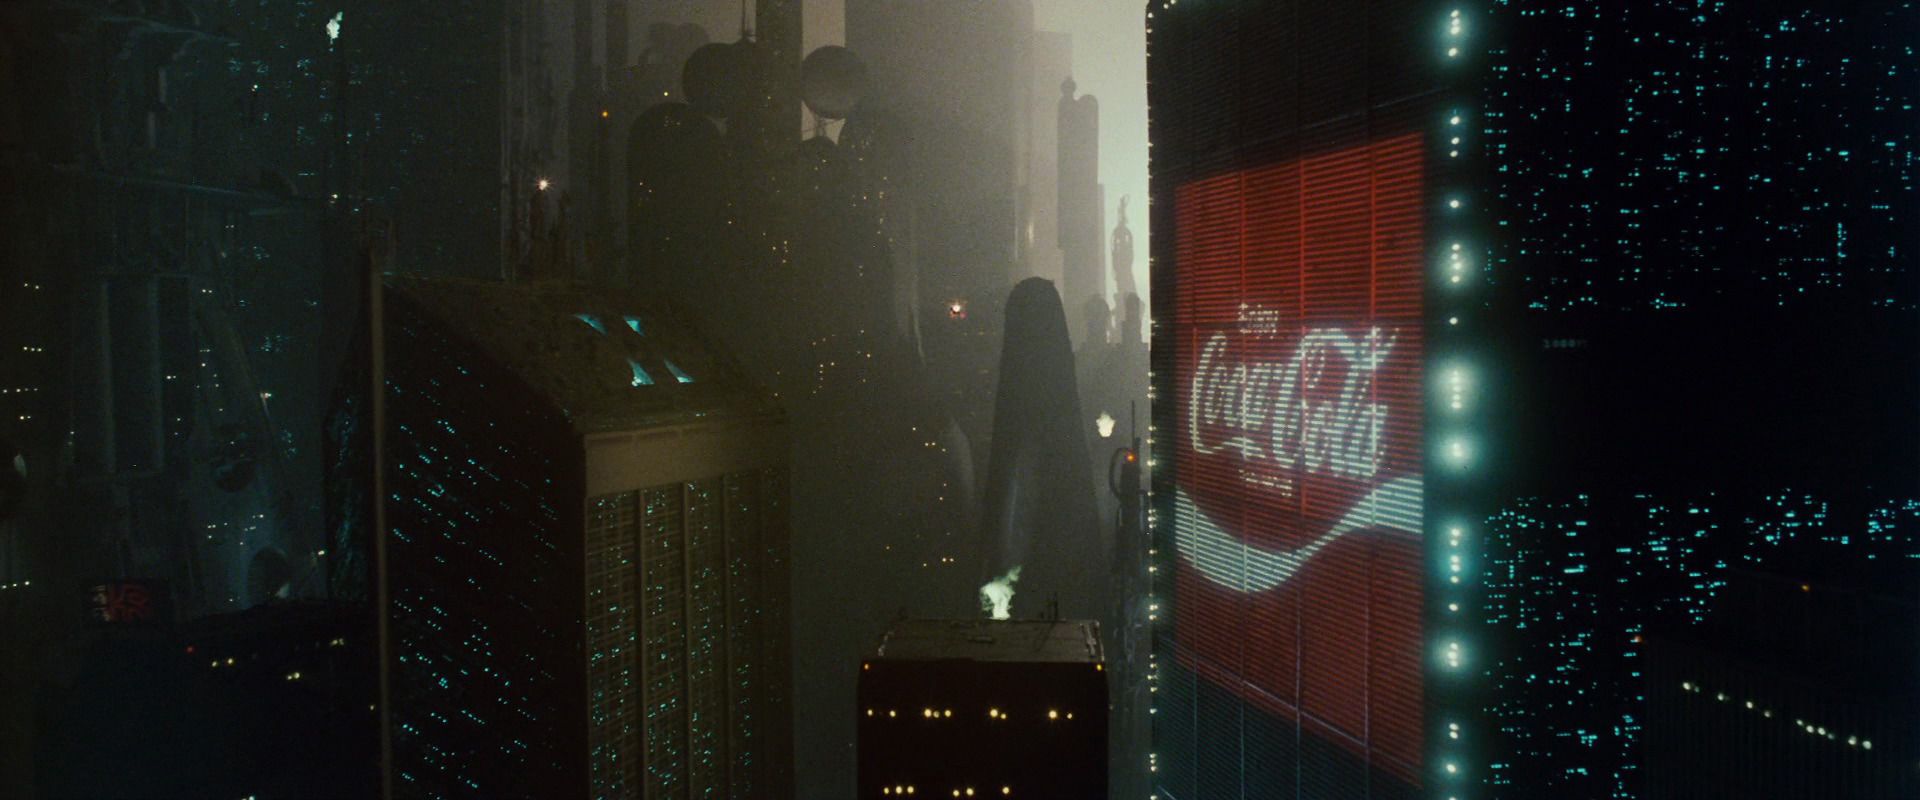 What Makes Food Cyberpunk? Part 1: The Cola Wars – Neon Dystopia